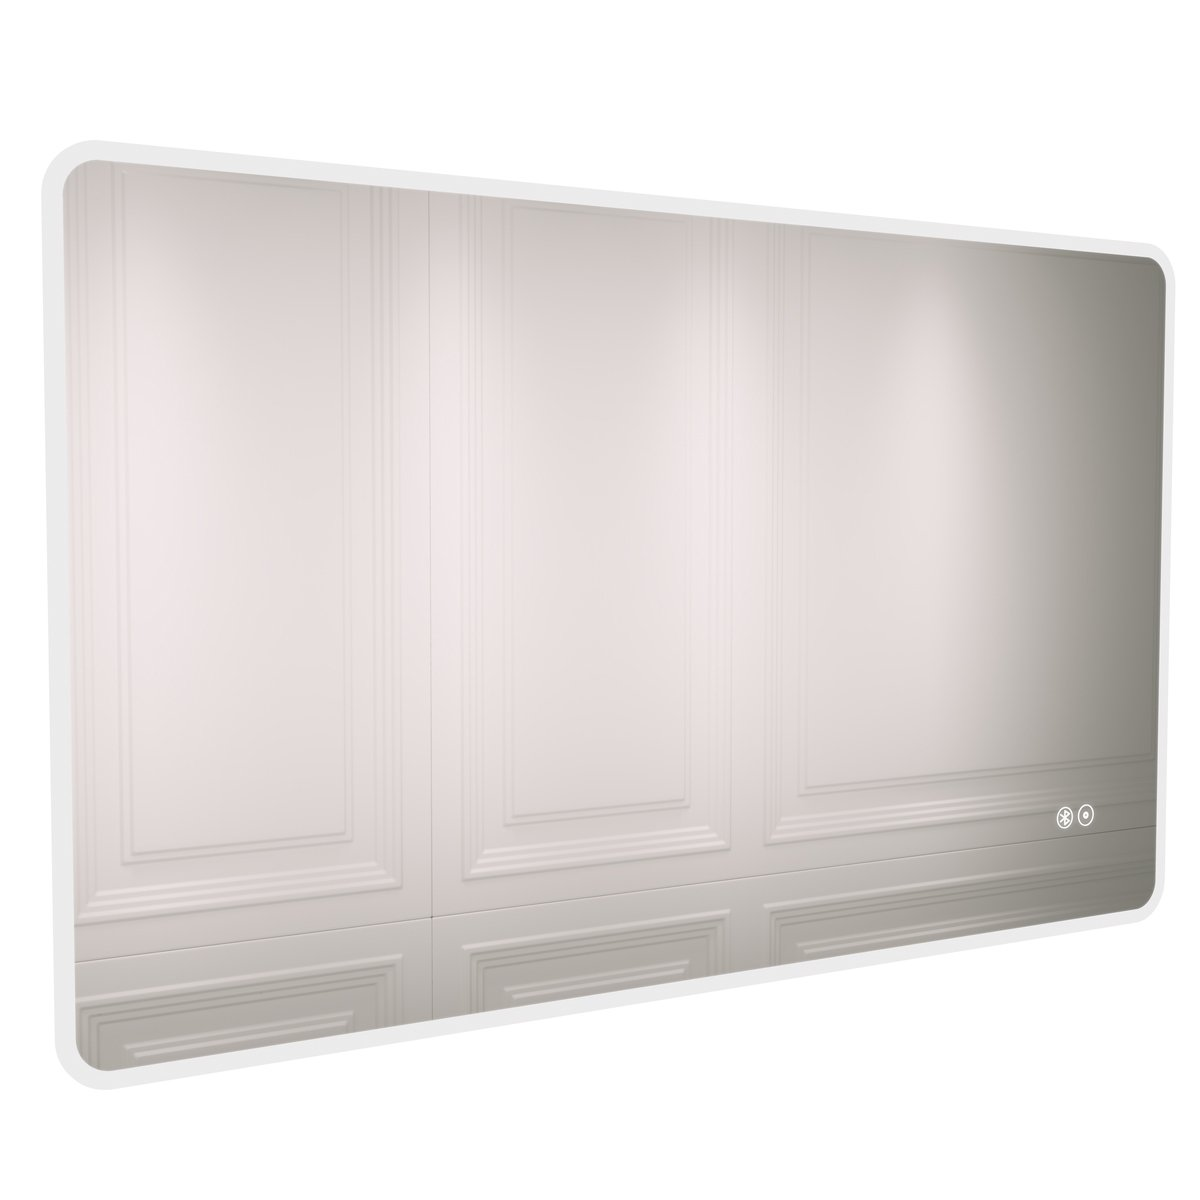 Cali LED Ambient Bathroom Mirror 600mm H x 1000mm W with Bluetooth and De-Mist